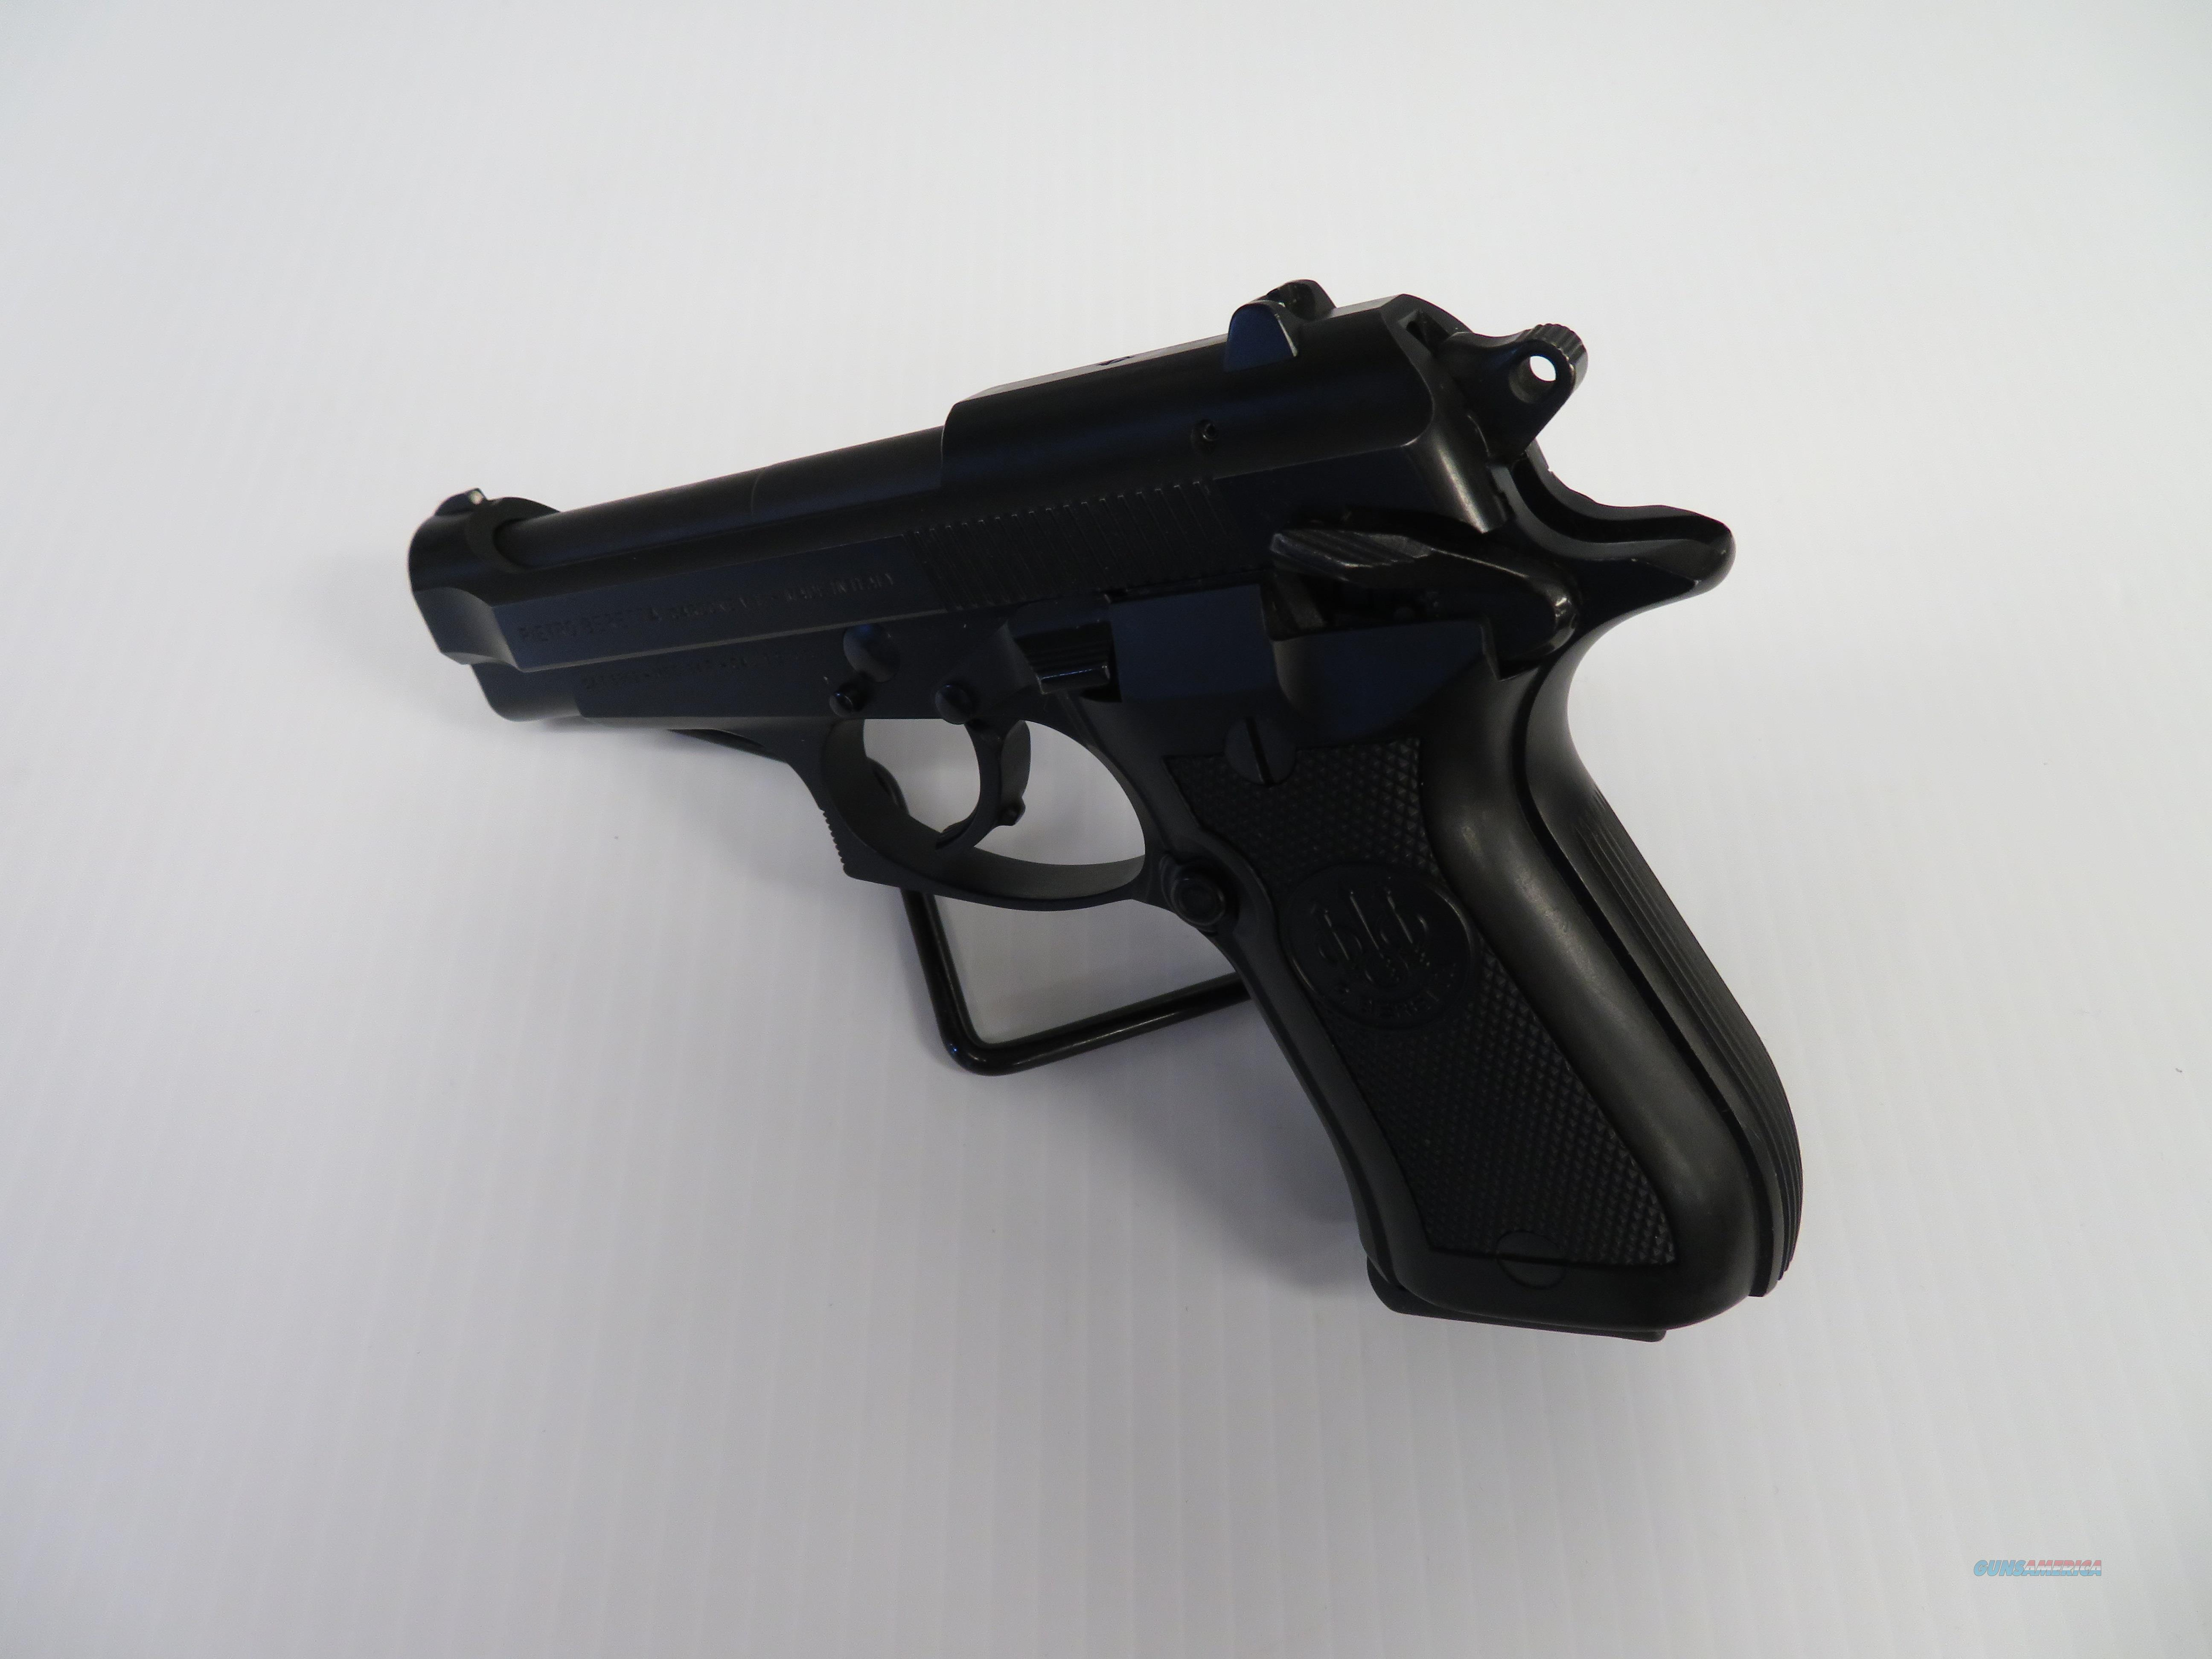 Beretta 84FS Cheetah Double-Action  380 Auto Pistol with Double-Stacked  13-Round Magazine